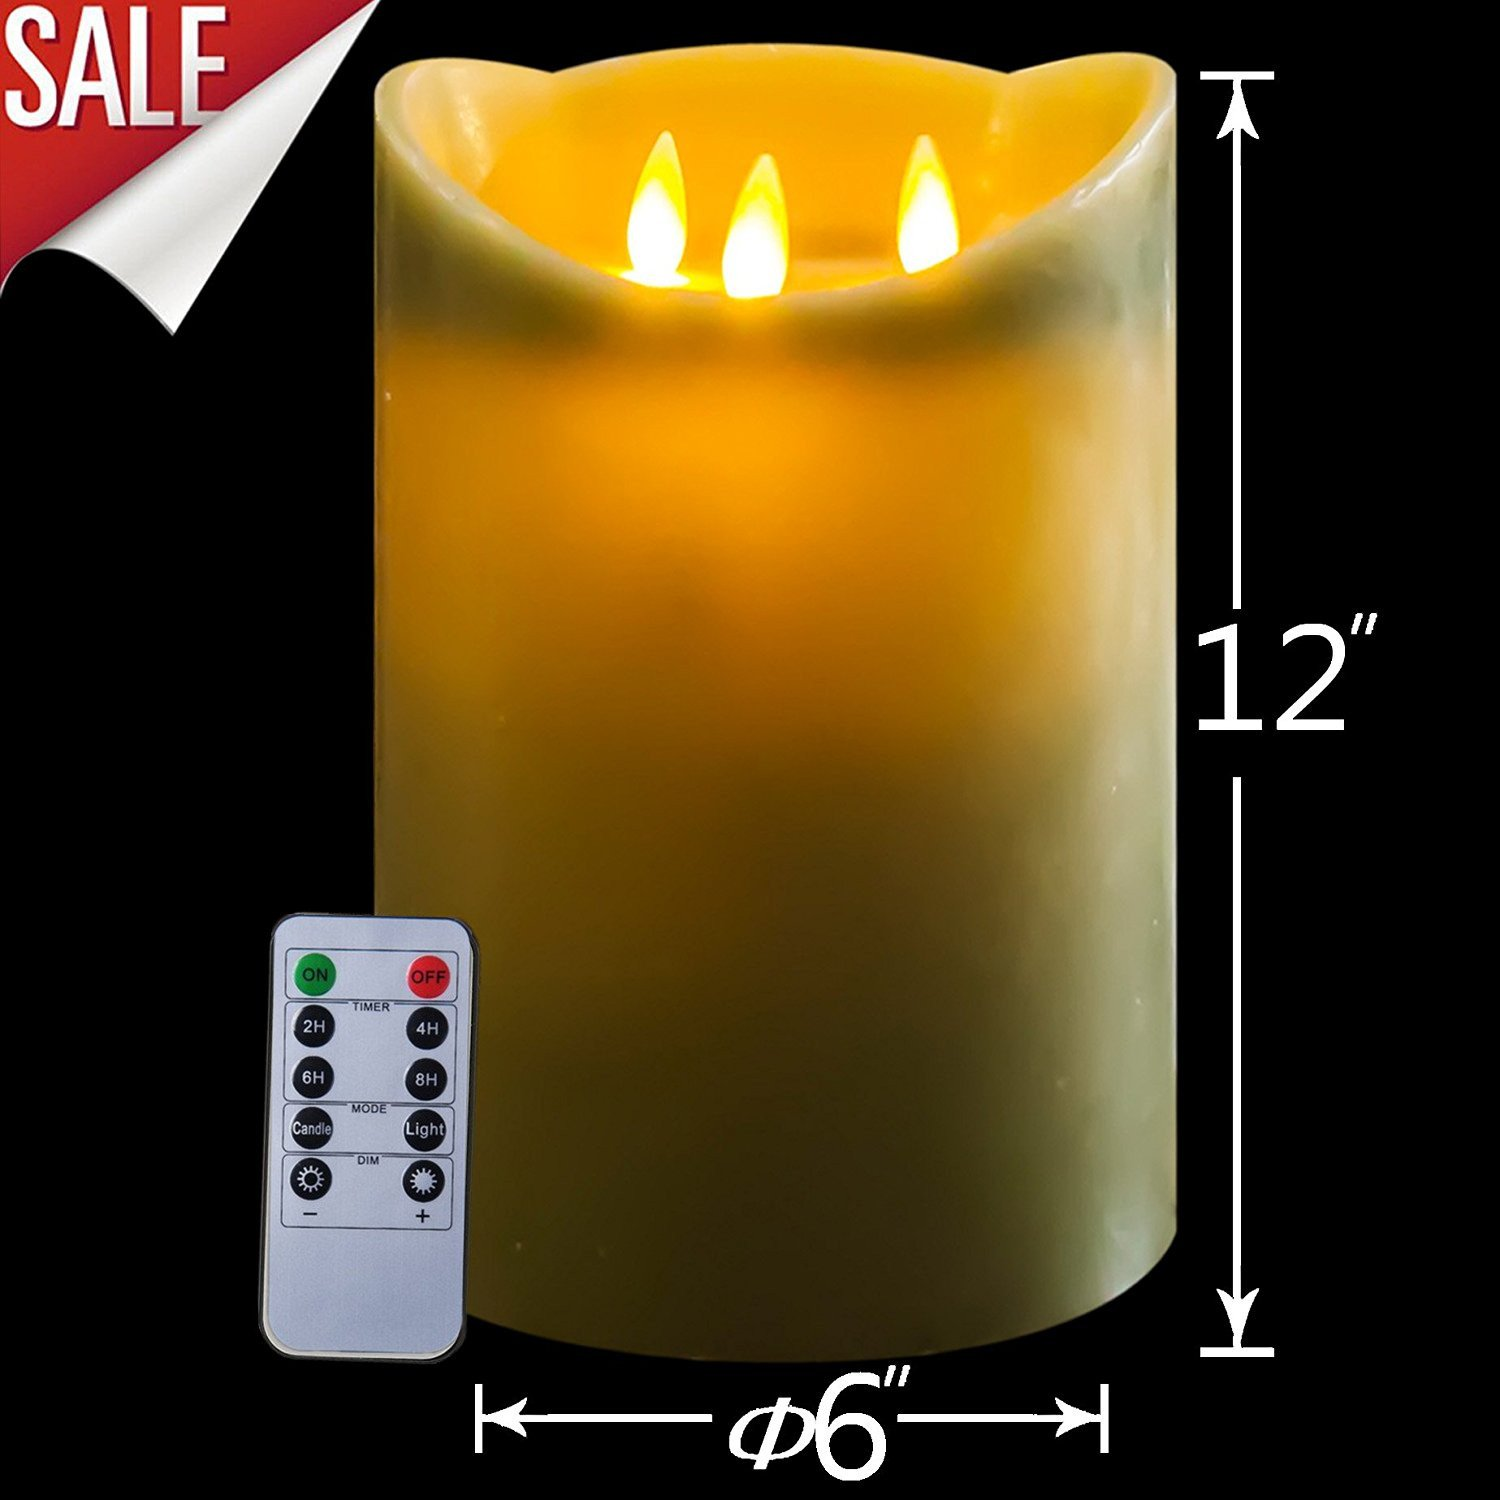 12 inch 3-wicks Flamless Candles with Remote Control & Timer